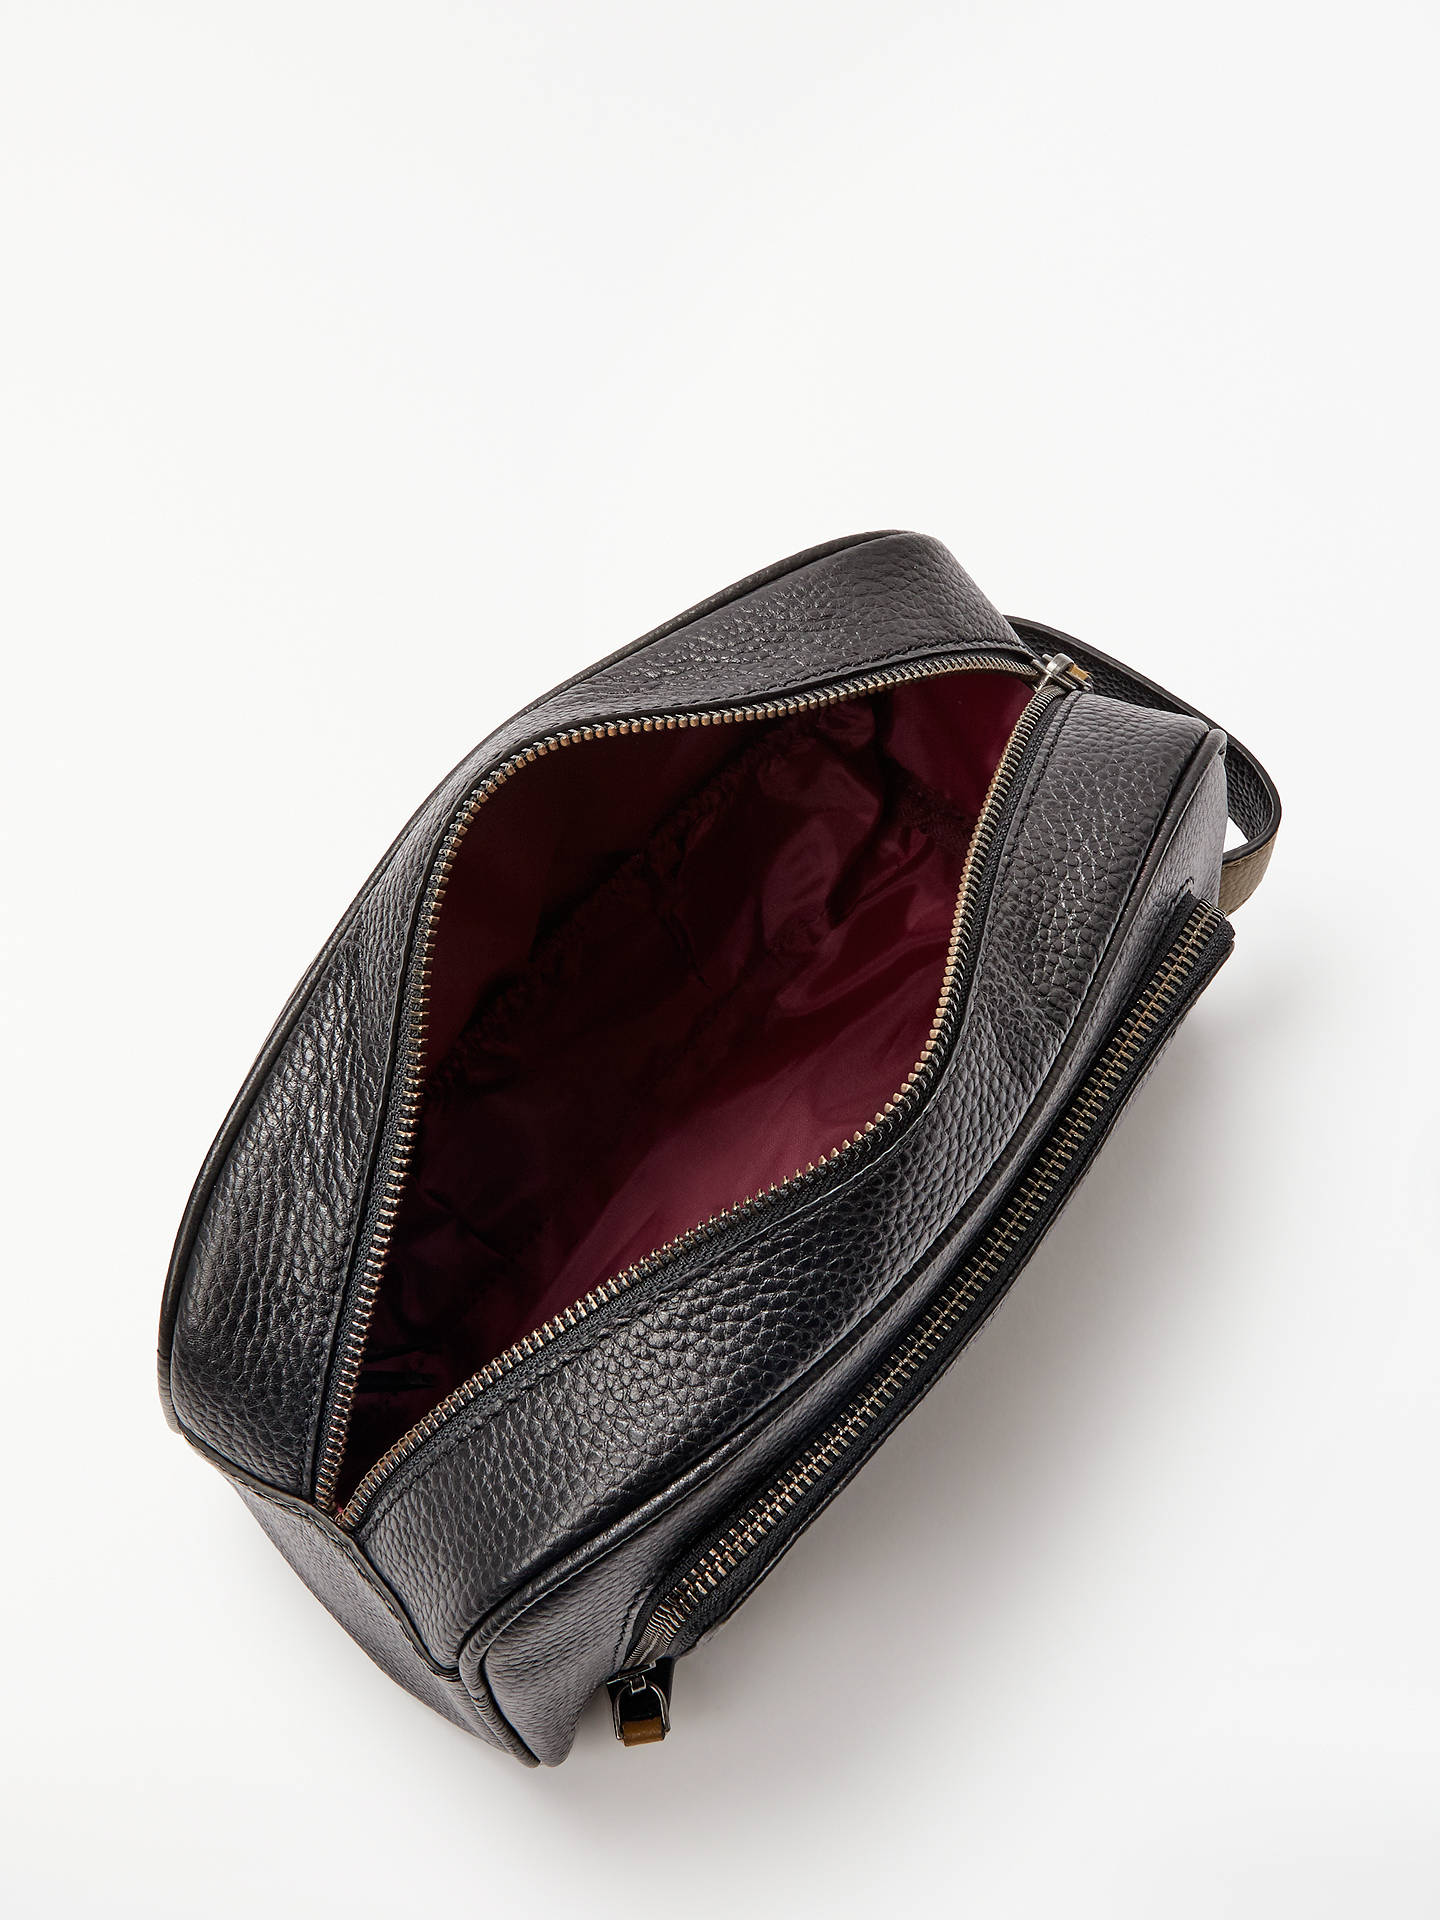 30760a11e55b56 great prices 1c7fb d7993 ted baker soaps leather washbag ...